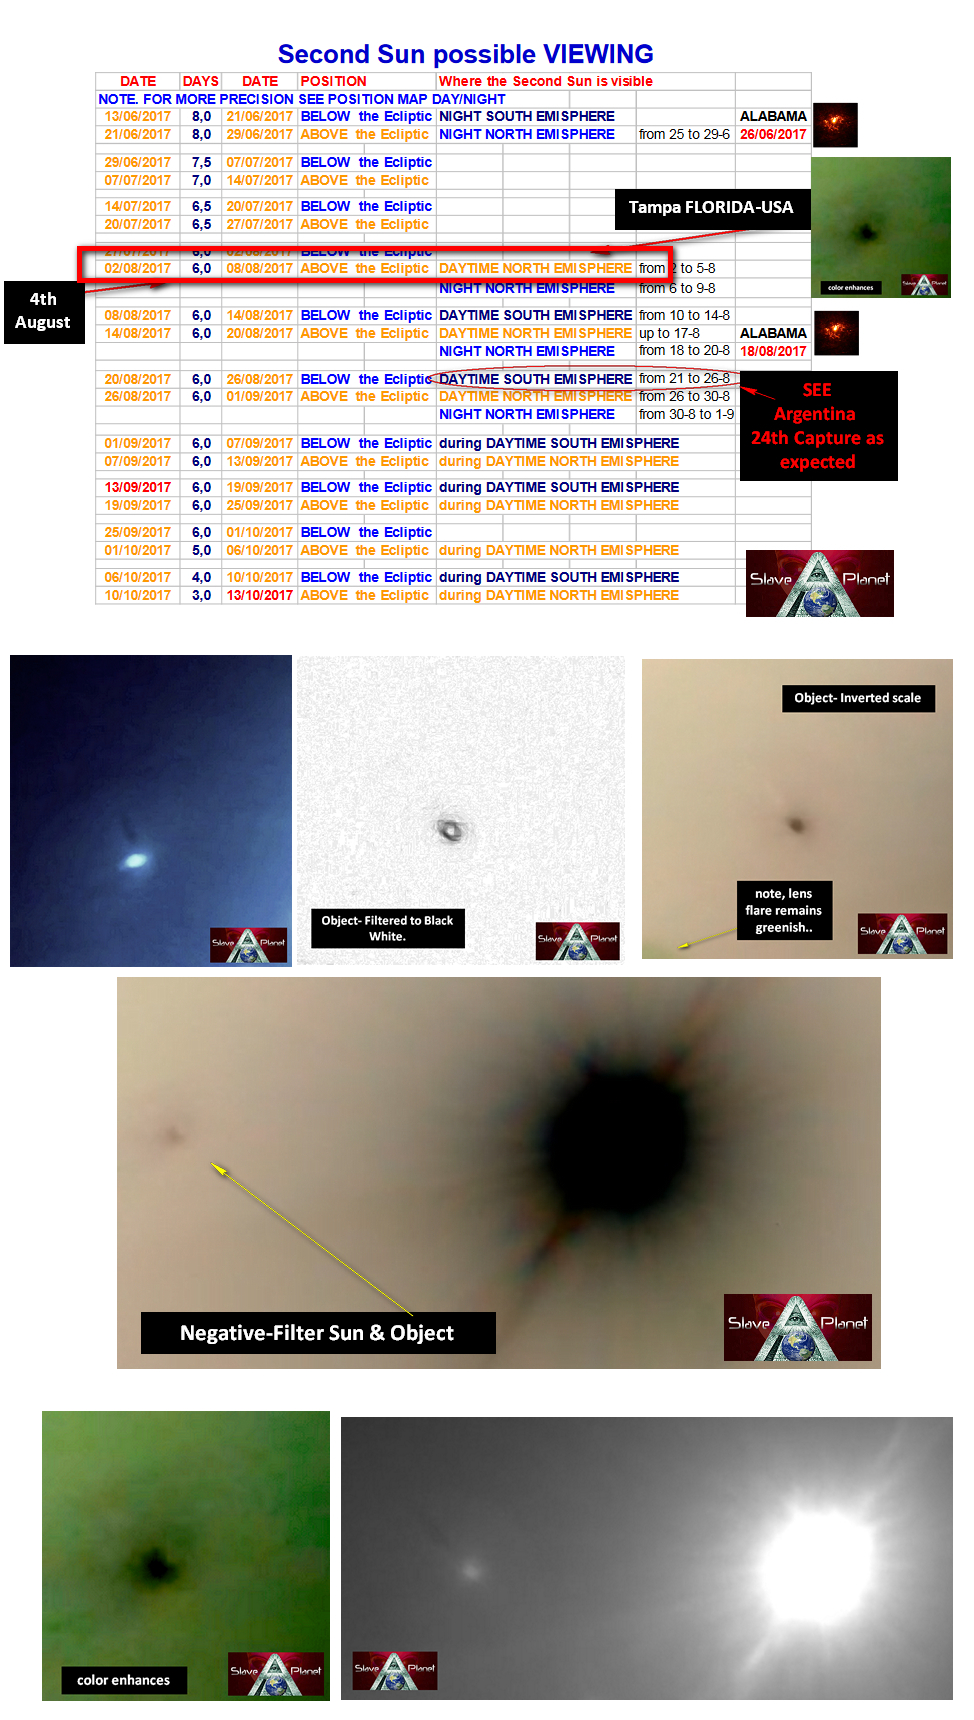 Nibiru Planet X SS Capture August2017 We Check this out